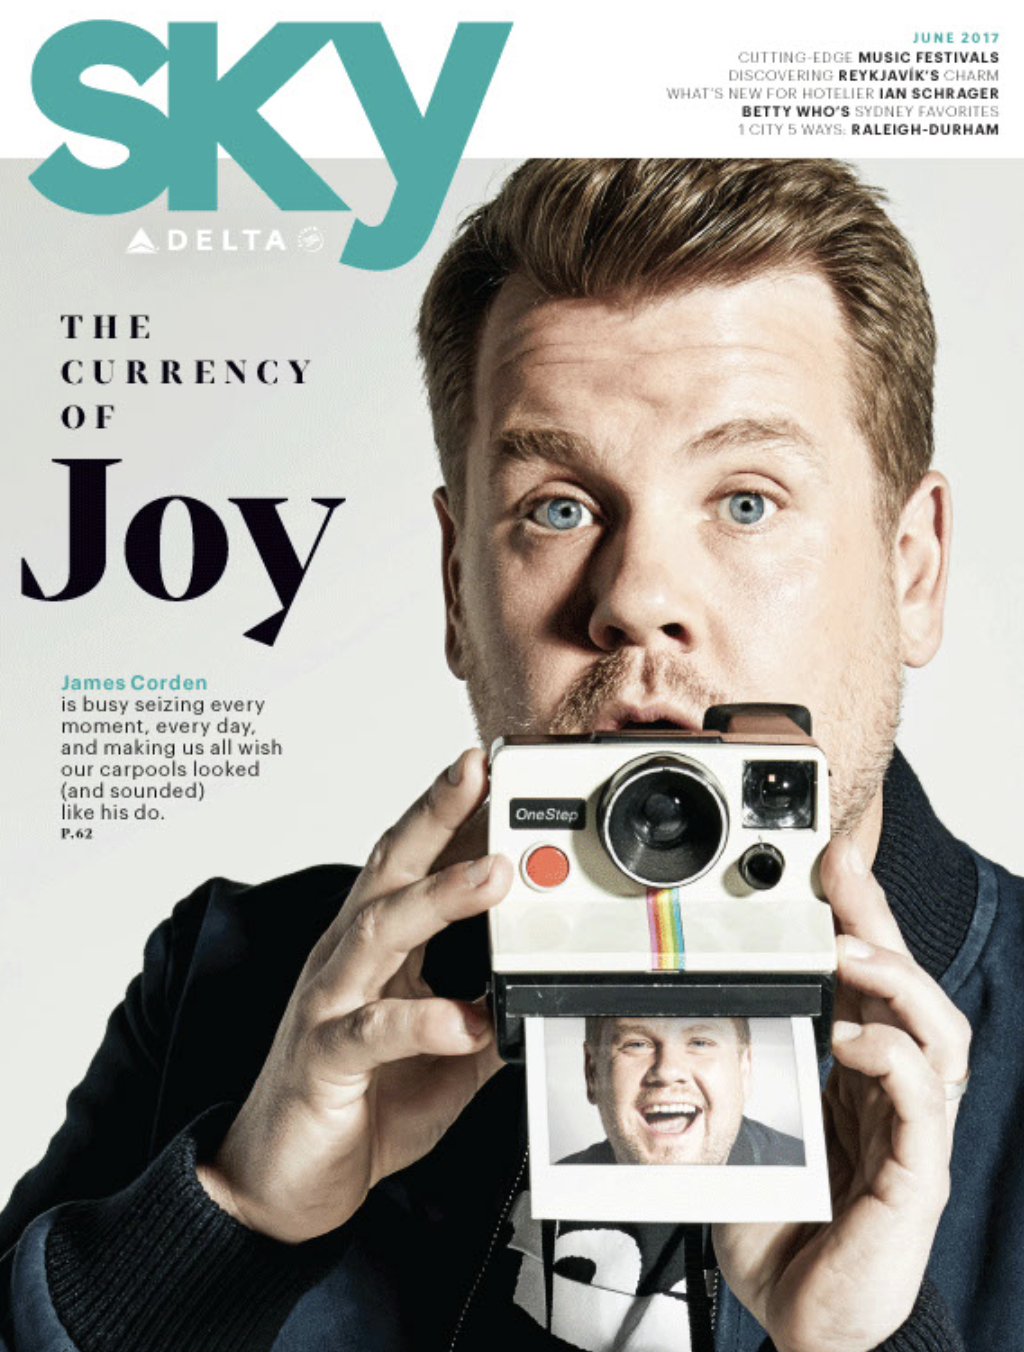 Delta-sky-magazine-jenny-adams-freelance-writer-photographer.png